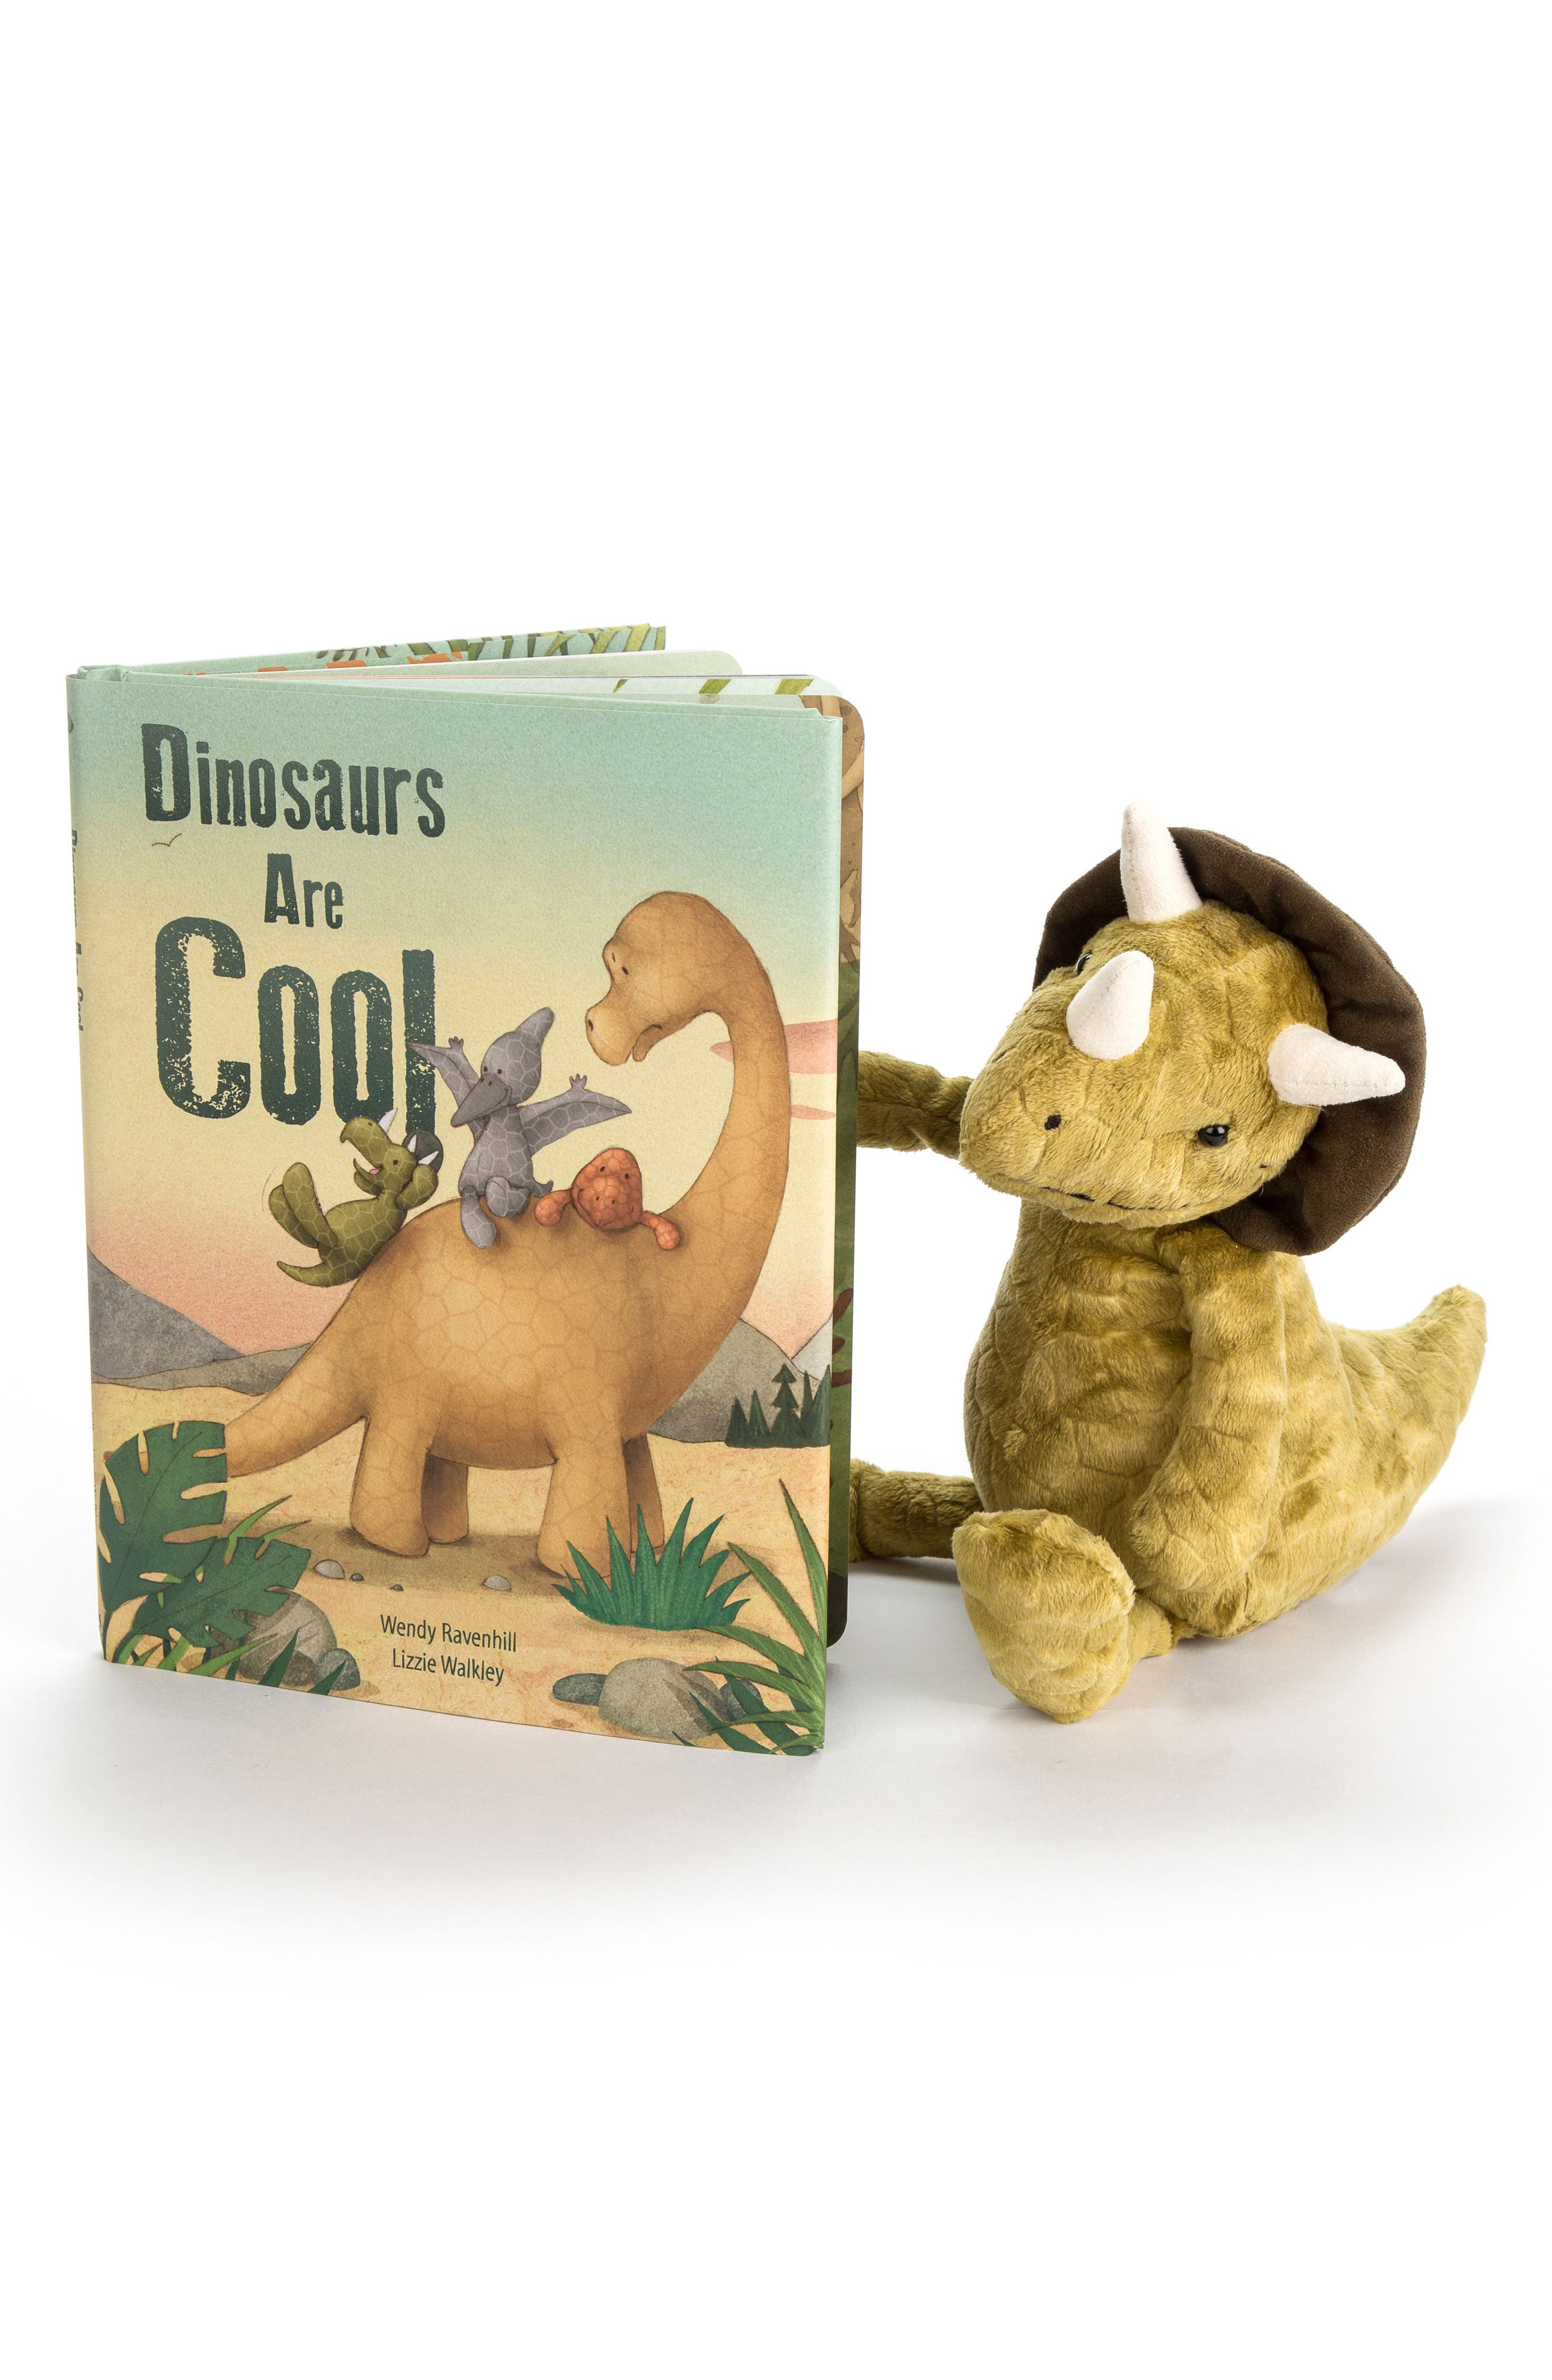 Alternate Image 1 Selected - Jellycat Dinosaurs Are Cool Book & Plush Toy